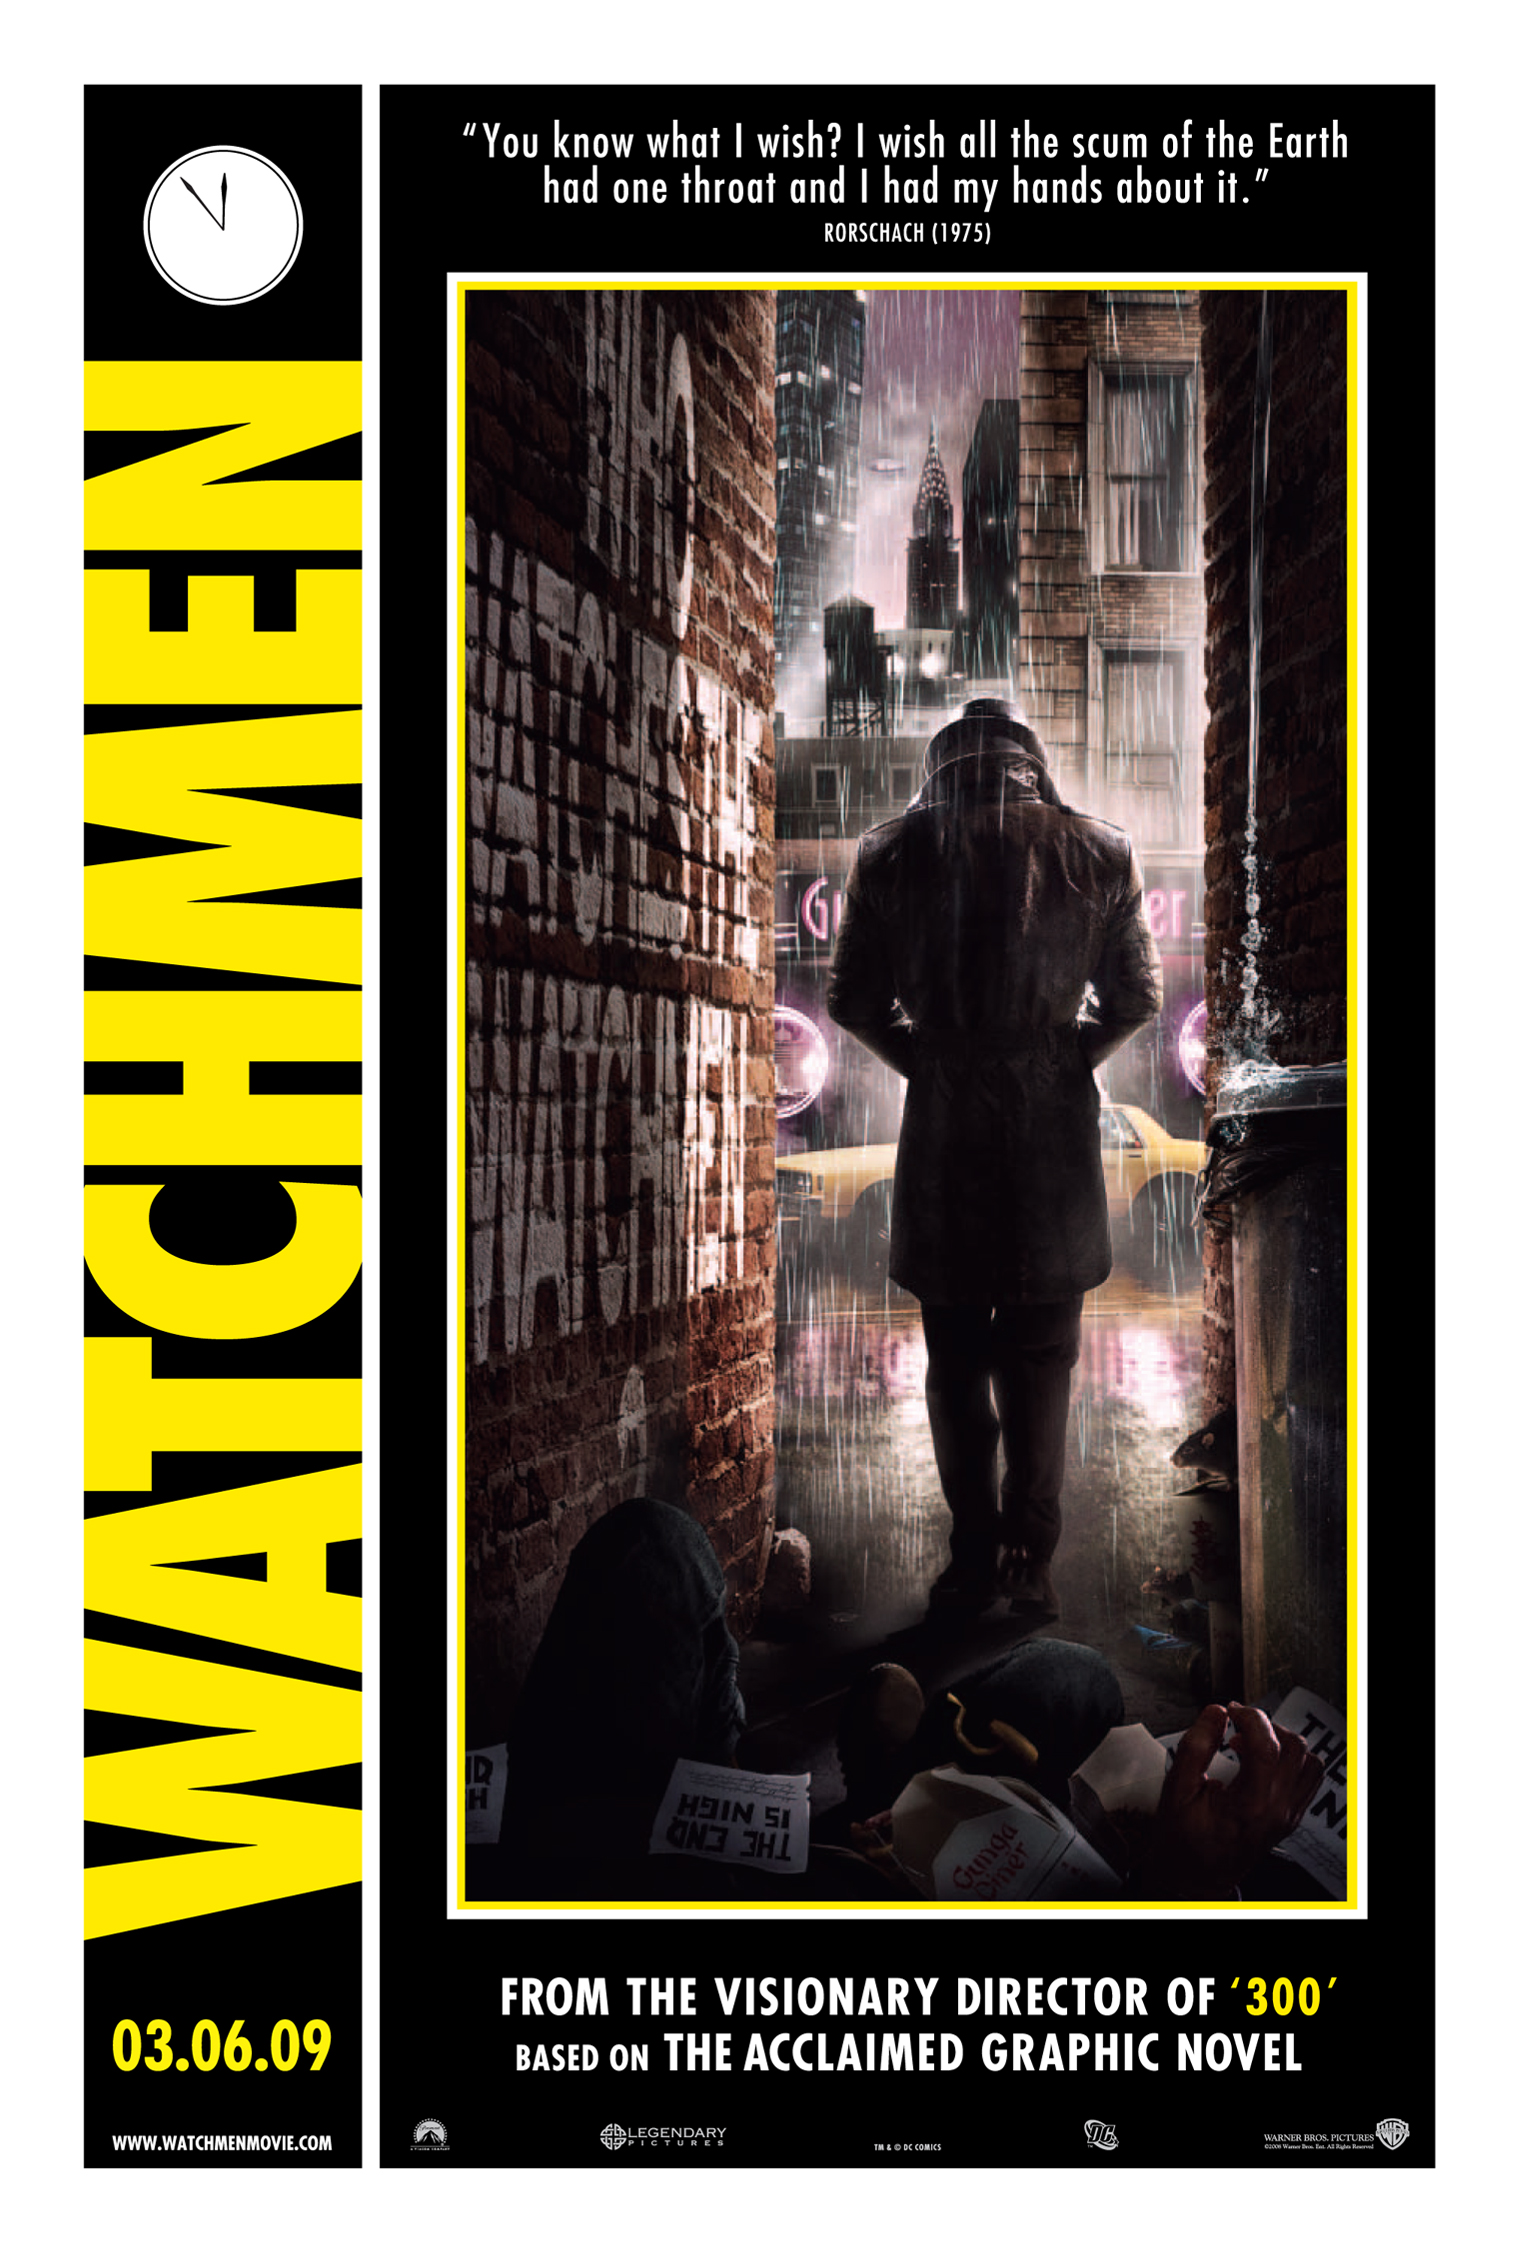 watchmen movie posters. Black Bedroom Furniture Sets. Home Design Ideas